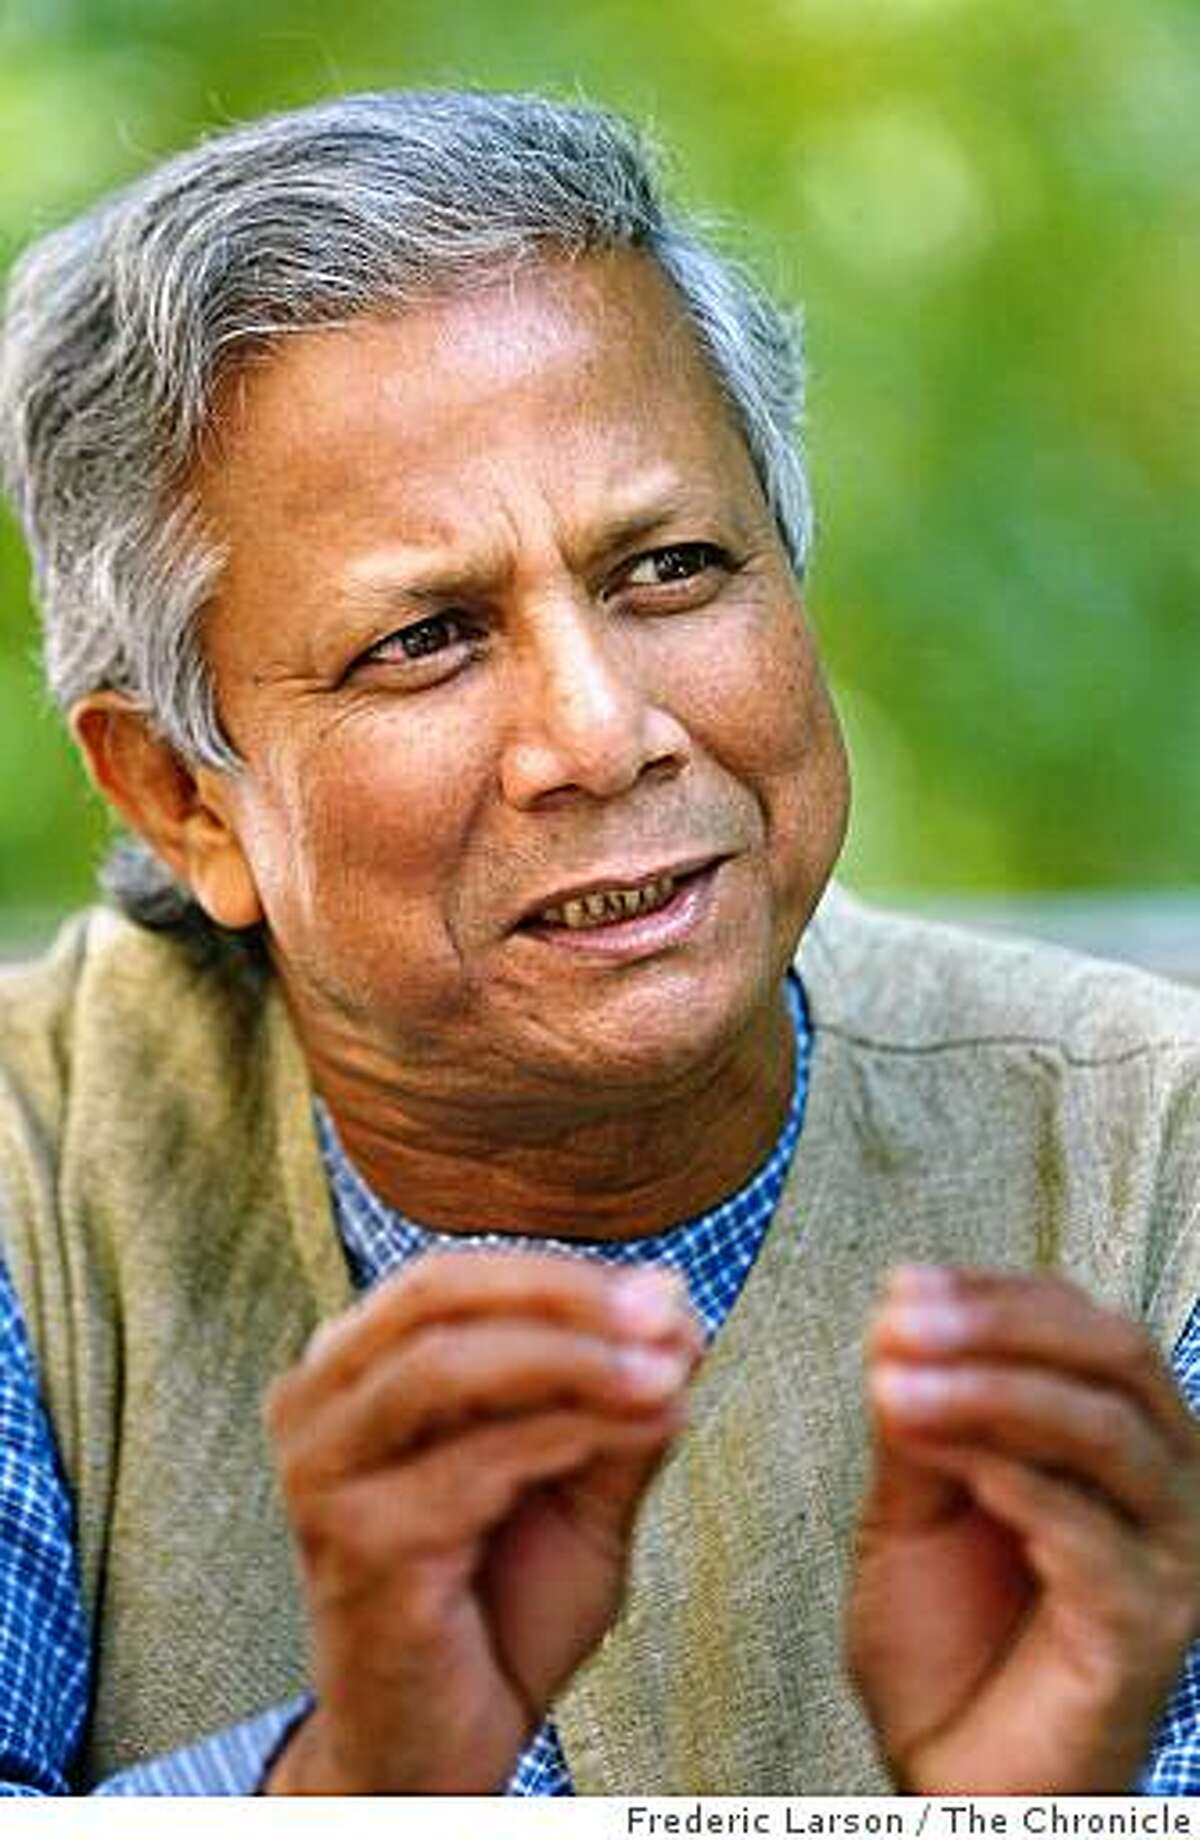 Muhammad Yunus, known as the banker of the poor, launched the microfinance movement.